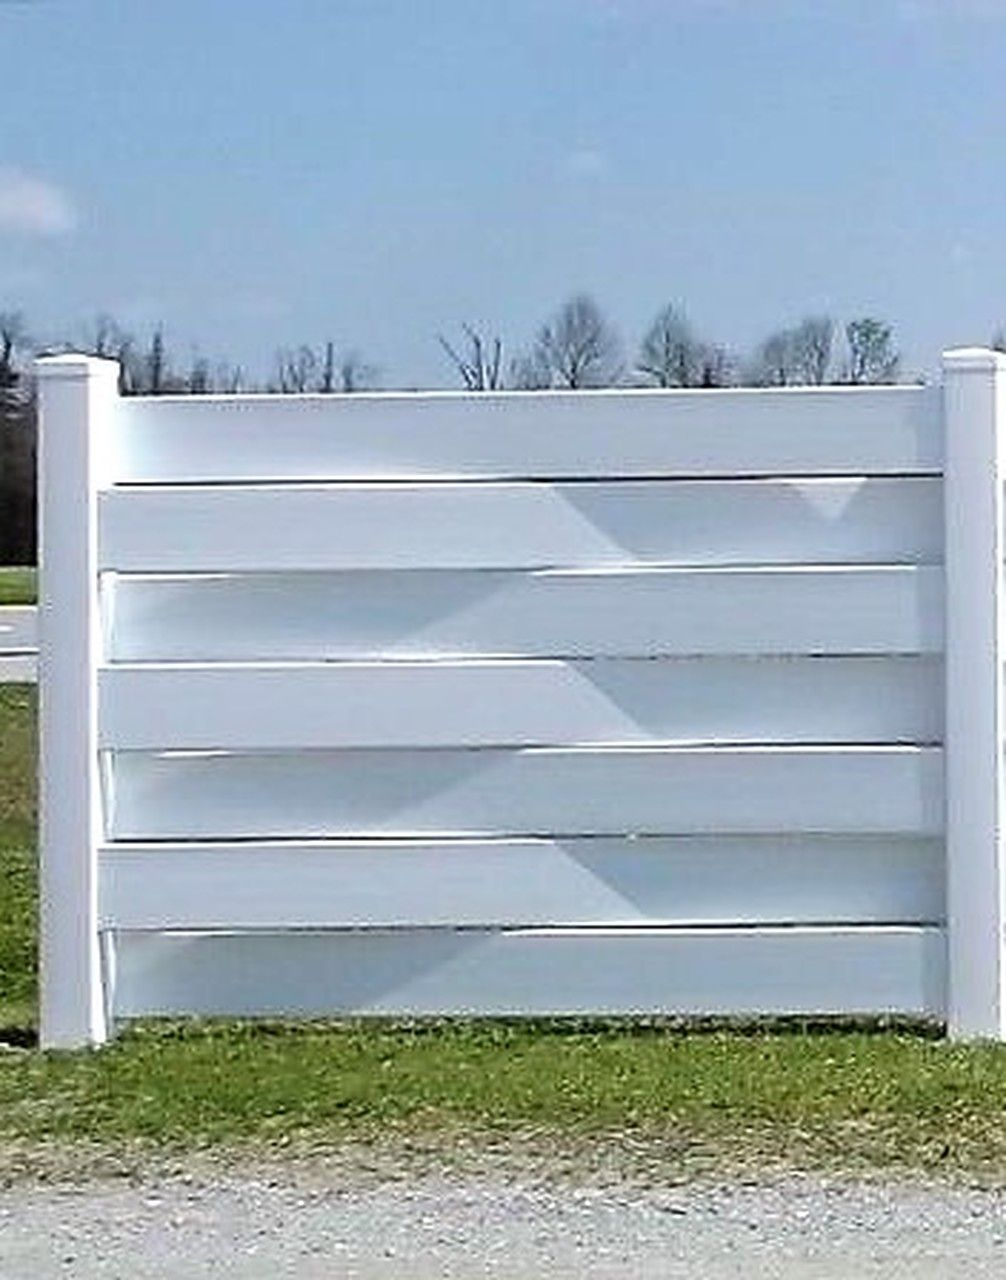 Pvc 6 X 4 Basket Weave Single Fence Panel Section With One Post No Glue No Screws The Fence Department Privacy Fence Designs Fence Design Garden Fence